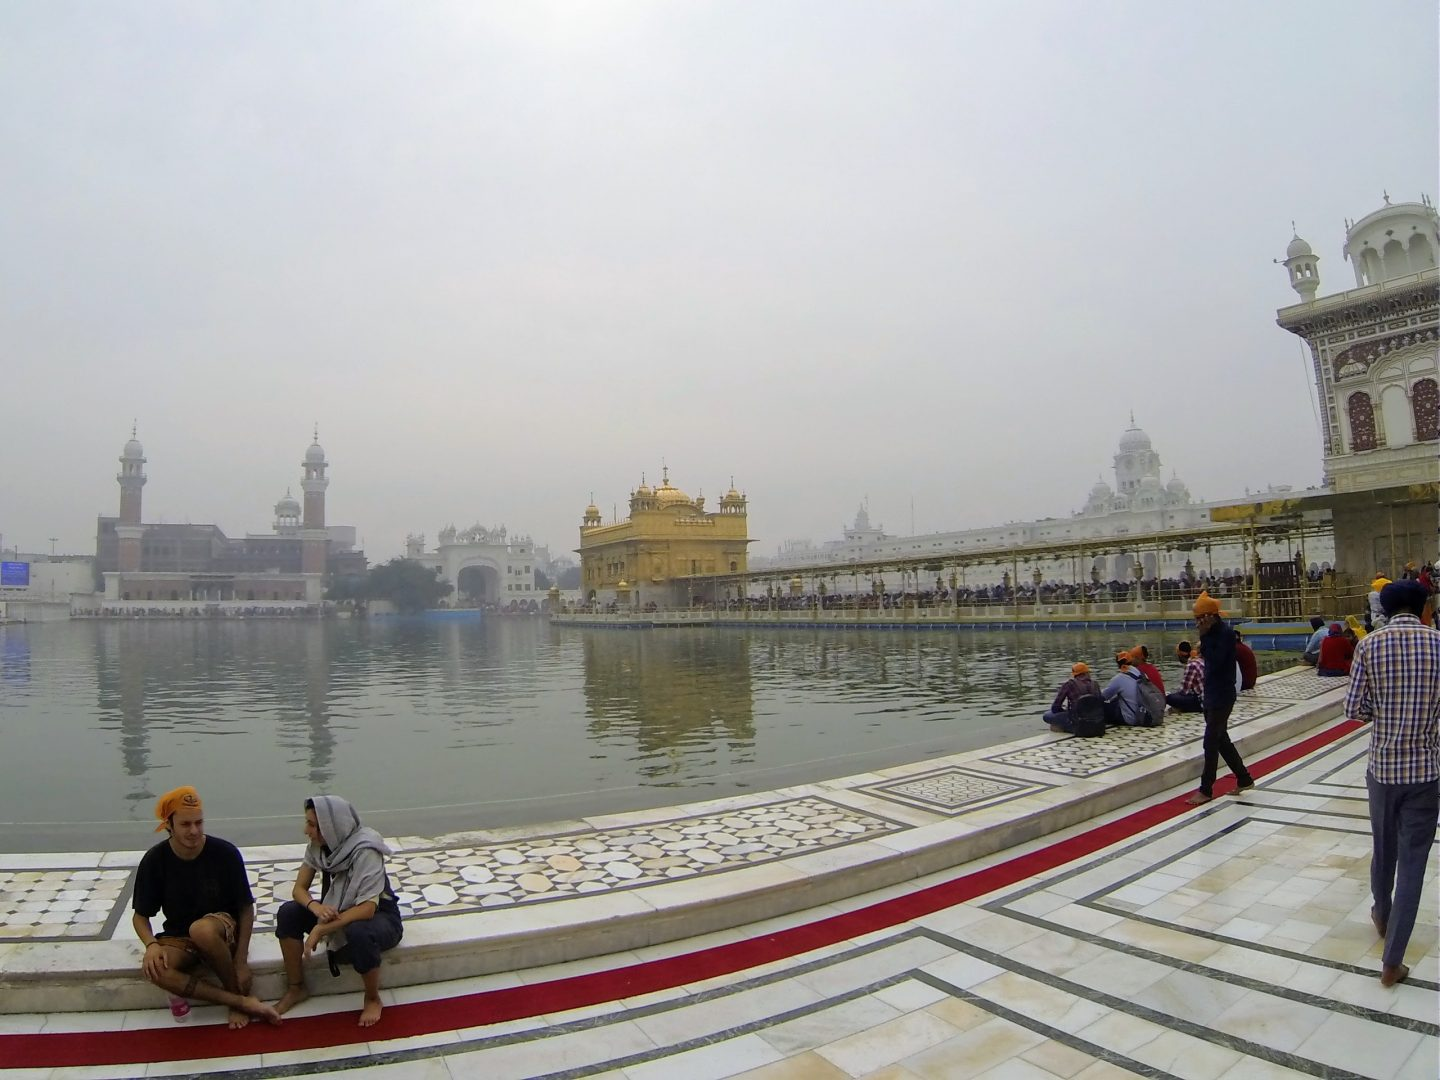 go pro photo of long queue into golden temple amritsar